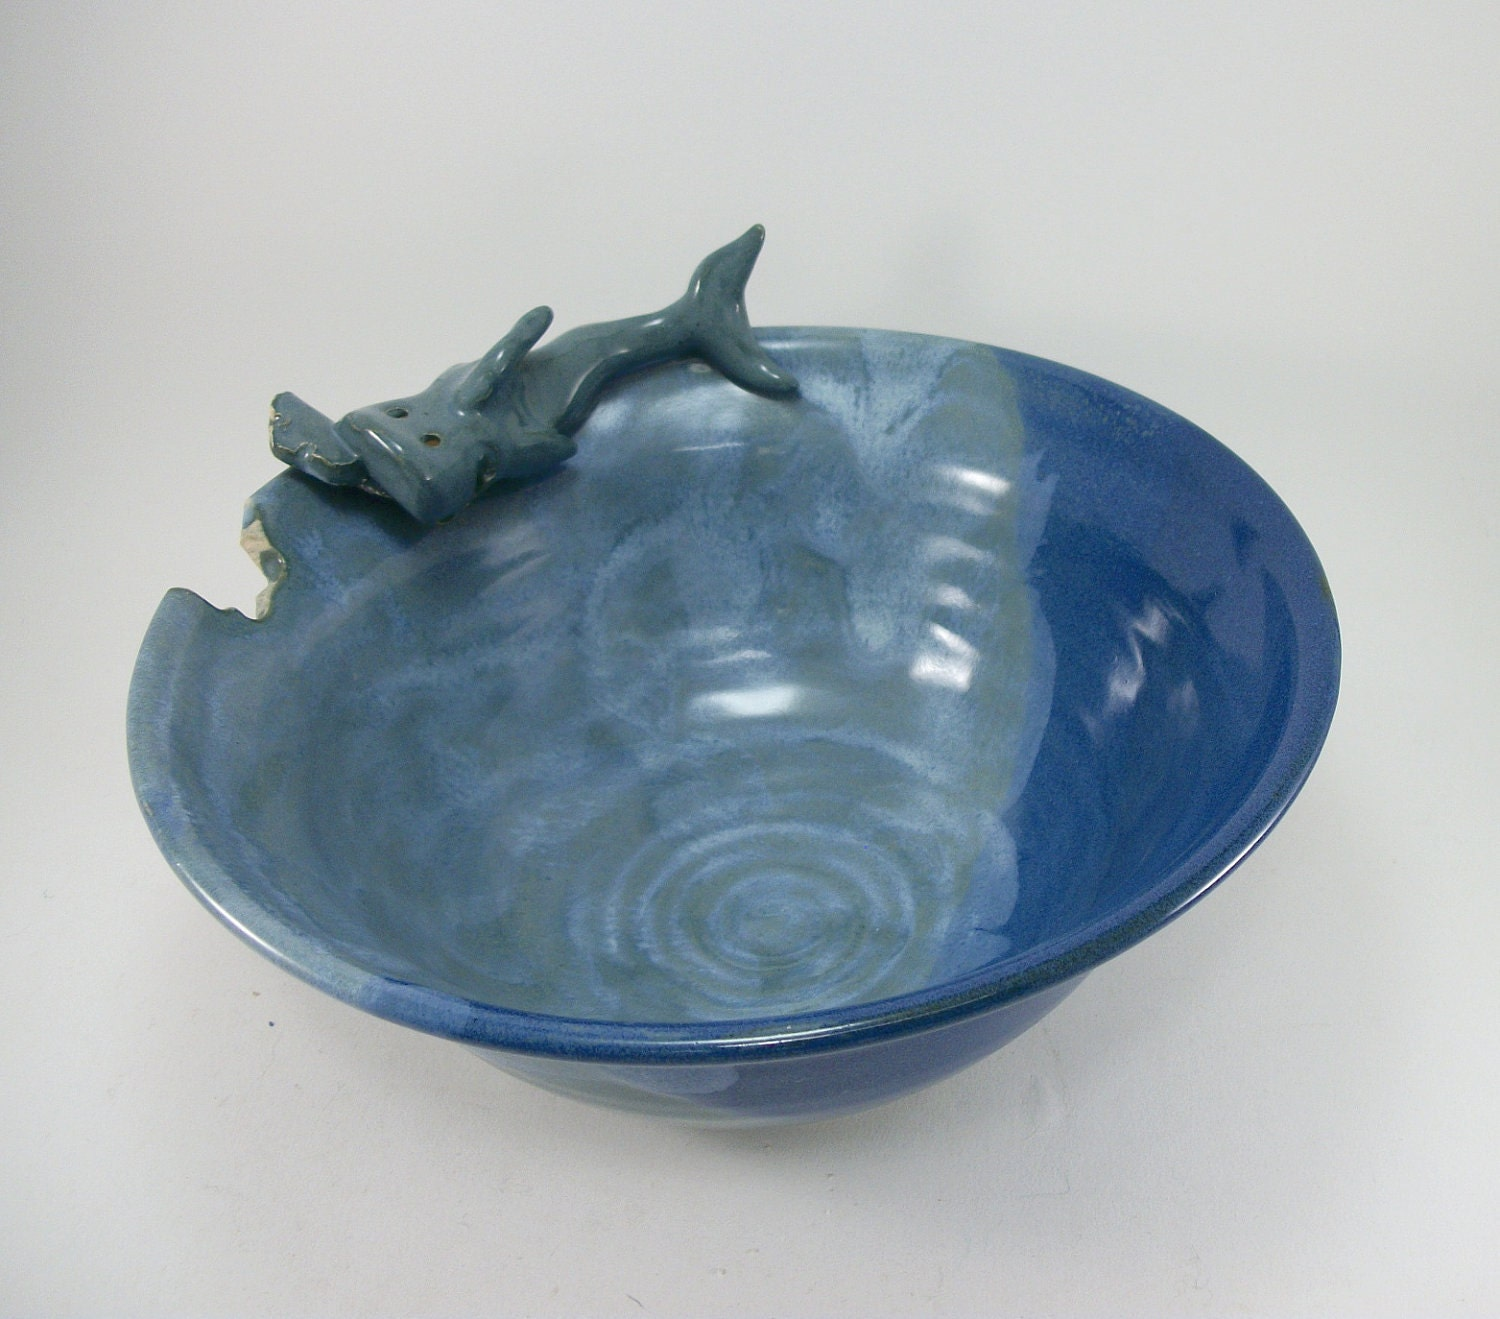 another shark bowl